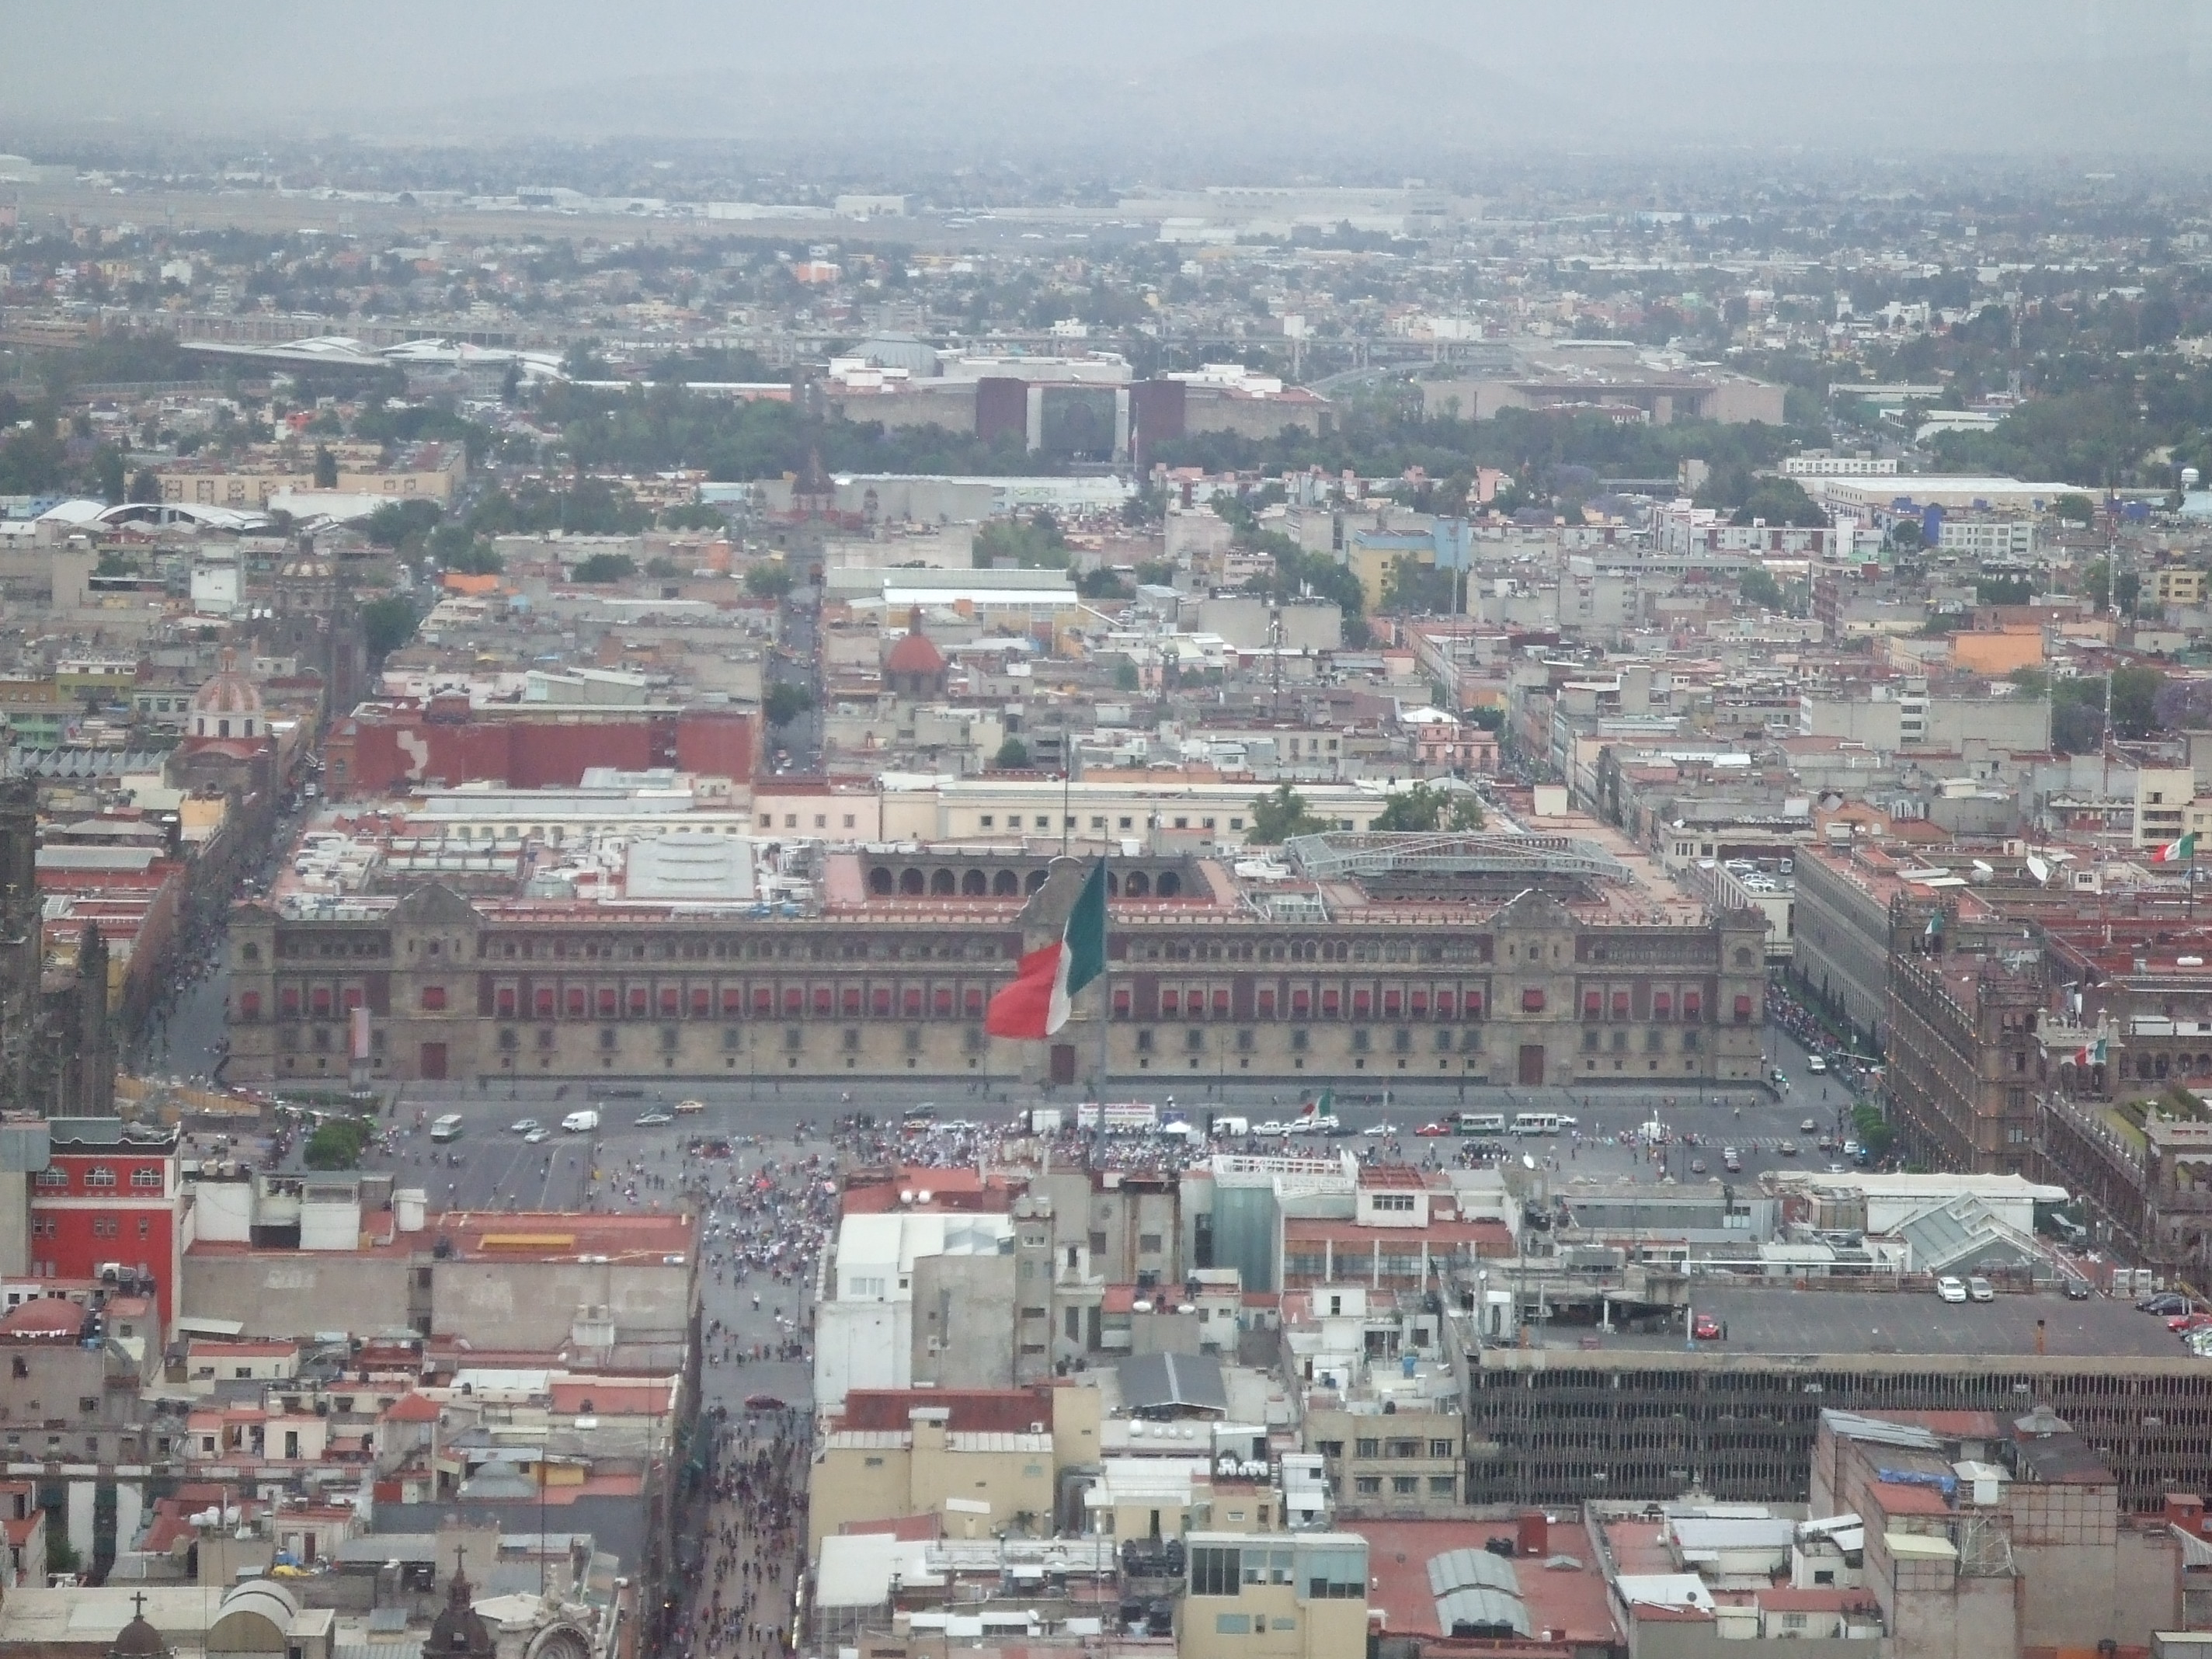 View of the Zocalo from the tower.